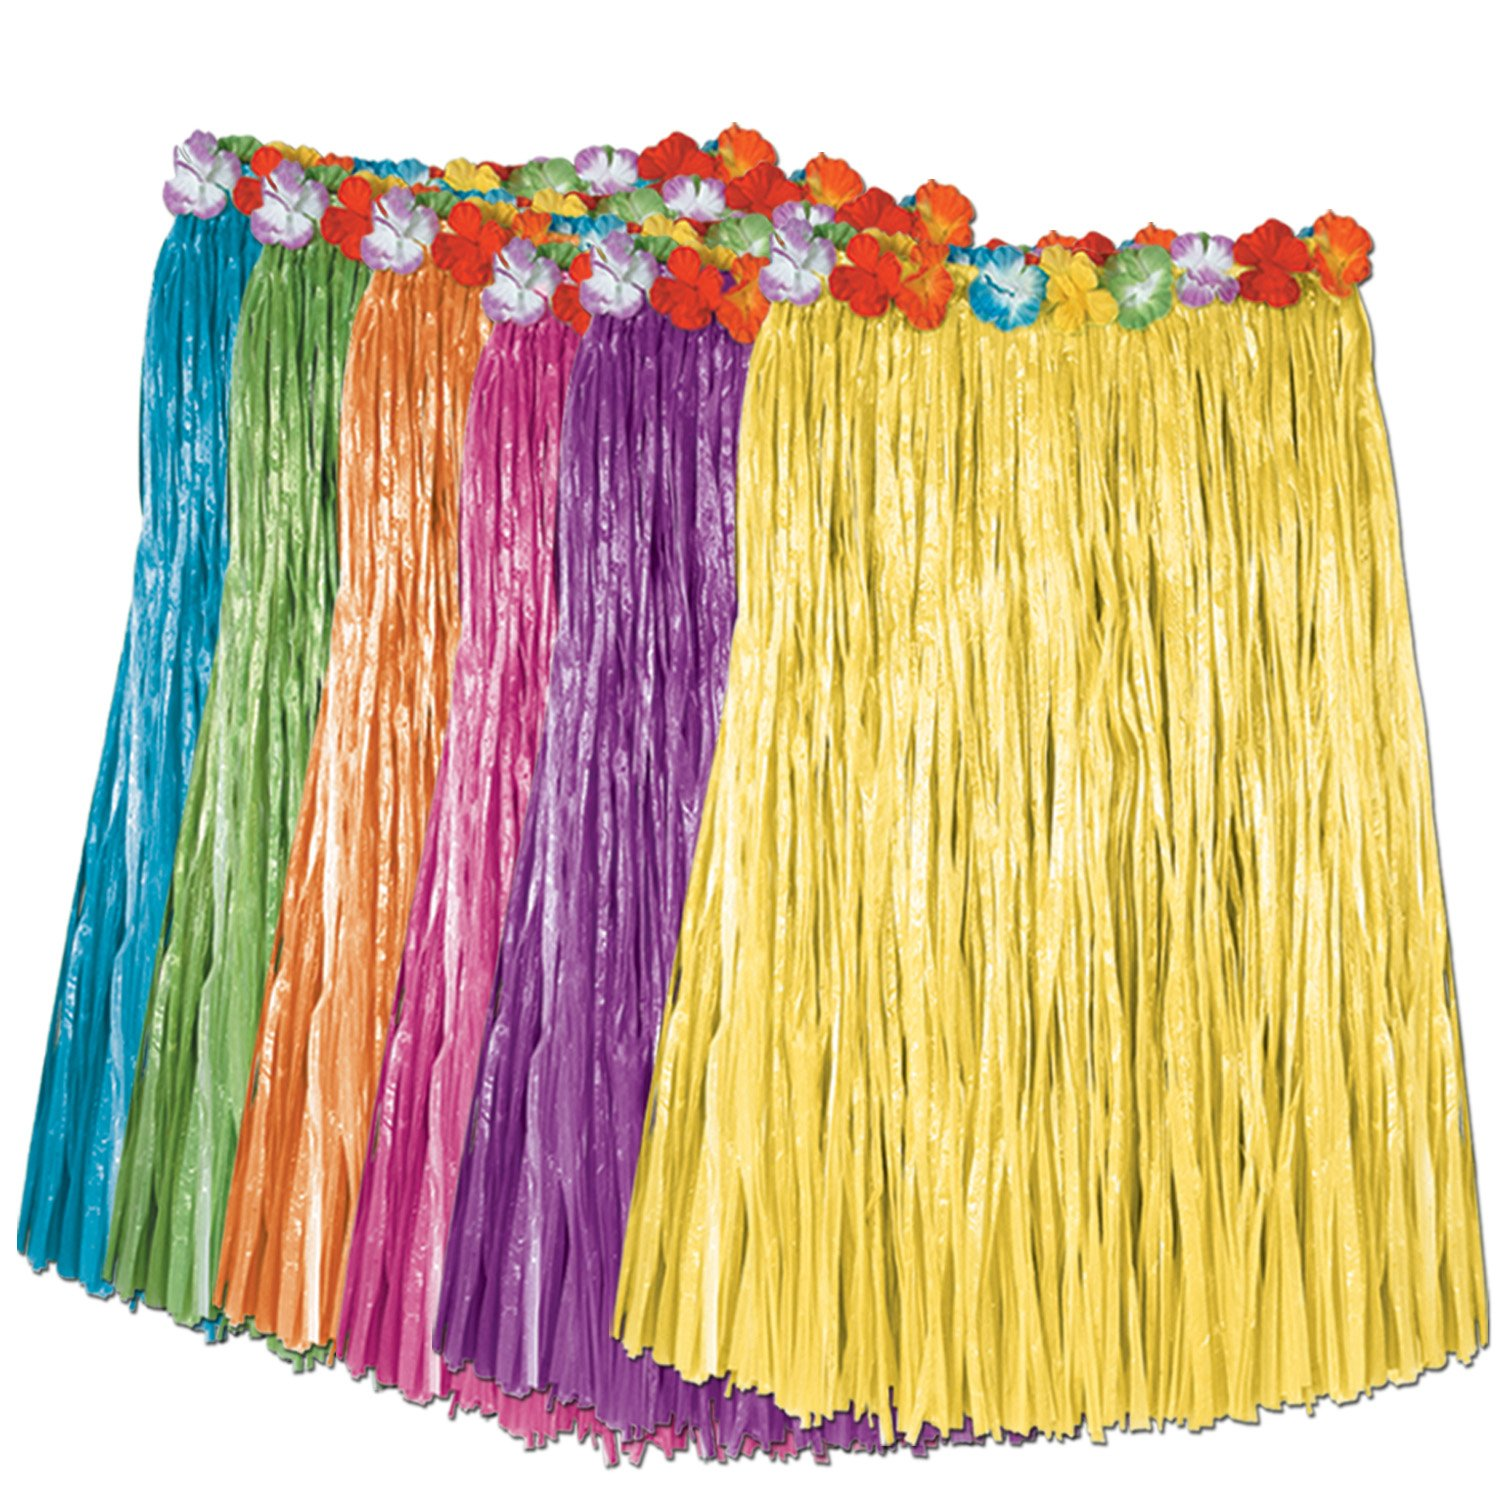 Beistle 50491-Ast Child Artificial Grass Hula Skirt, 27 by 20-Inch The Beistle Company 50491-ASST